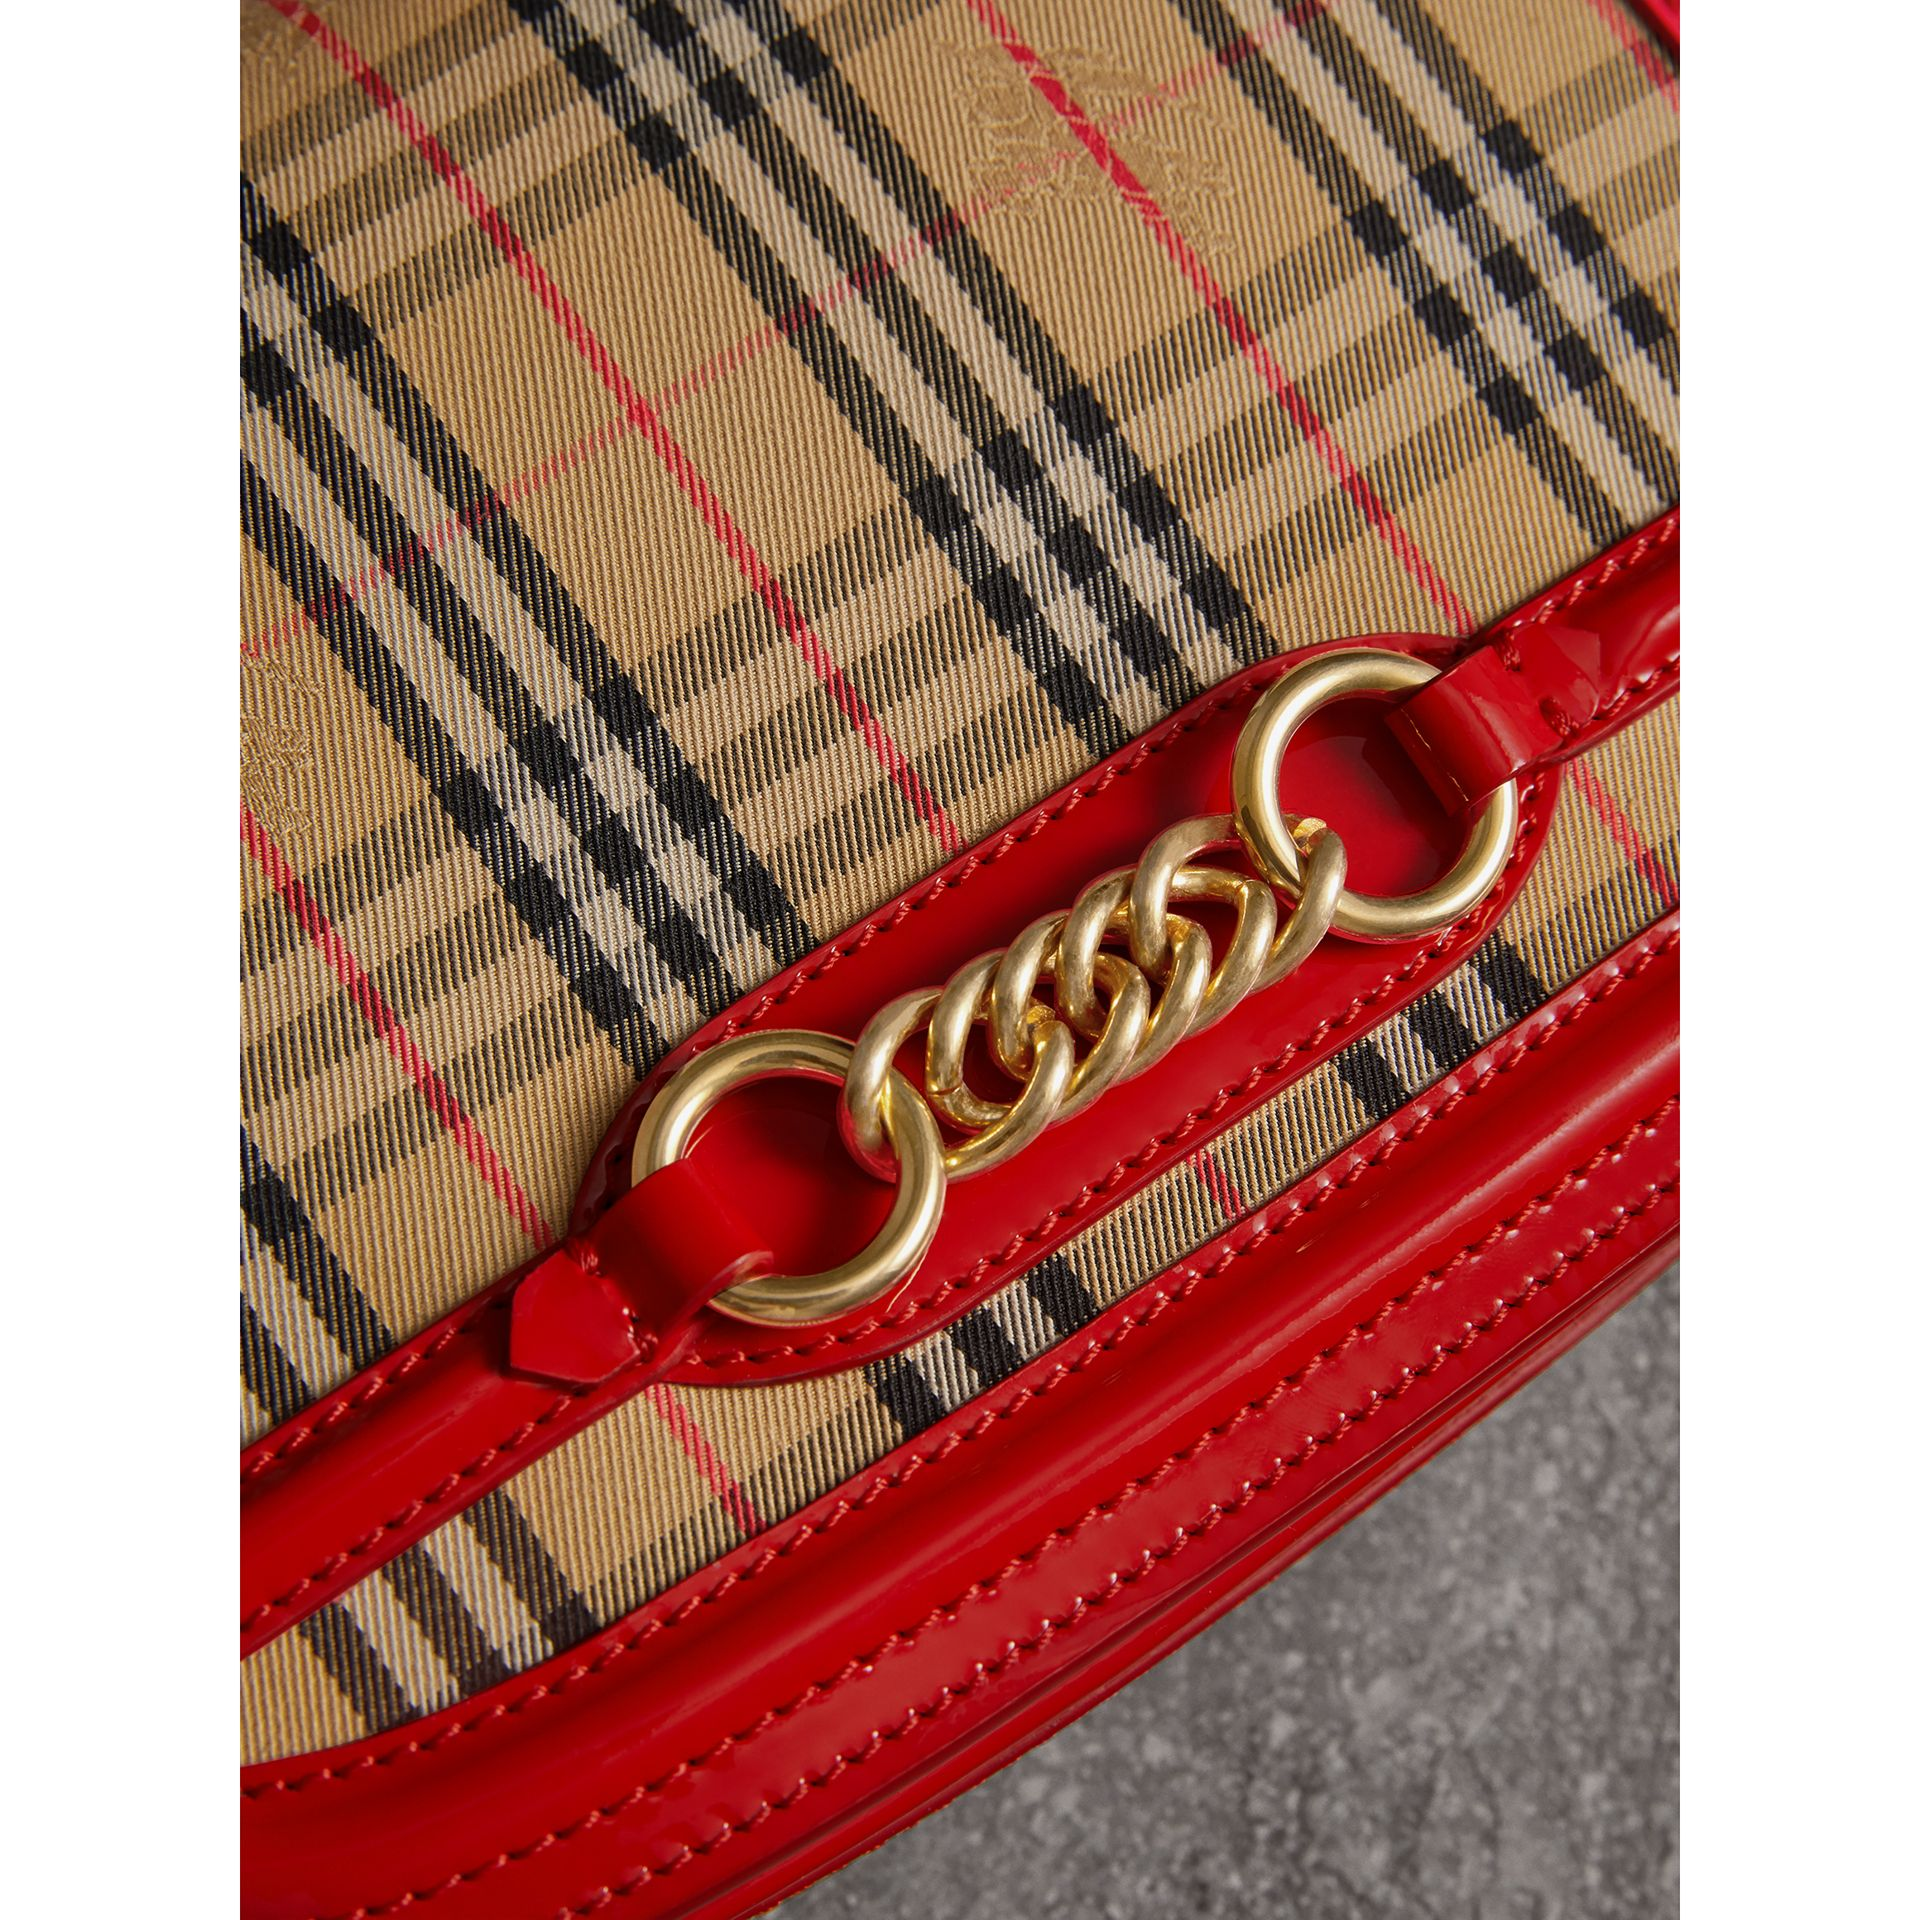 The 1983 Check Link Bag with Patent Trim in Bright Red - Women | Burberry United Kingdom - gallery image 1